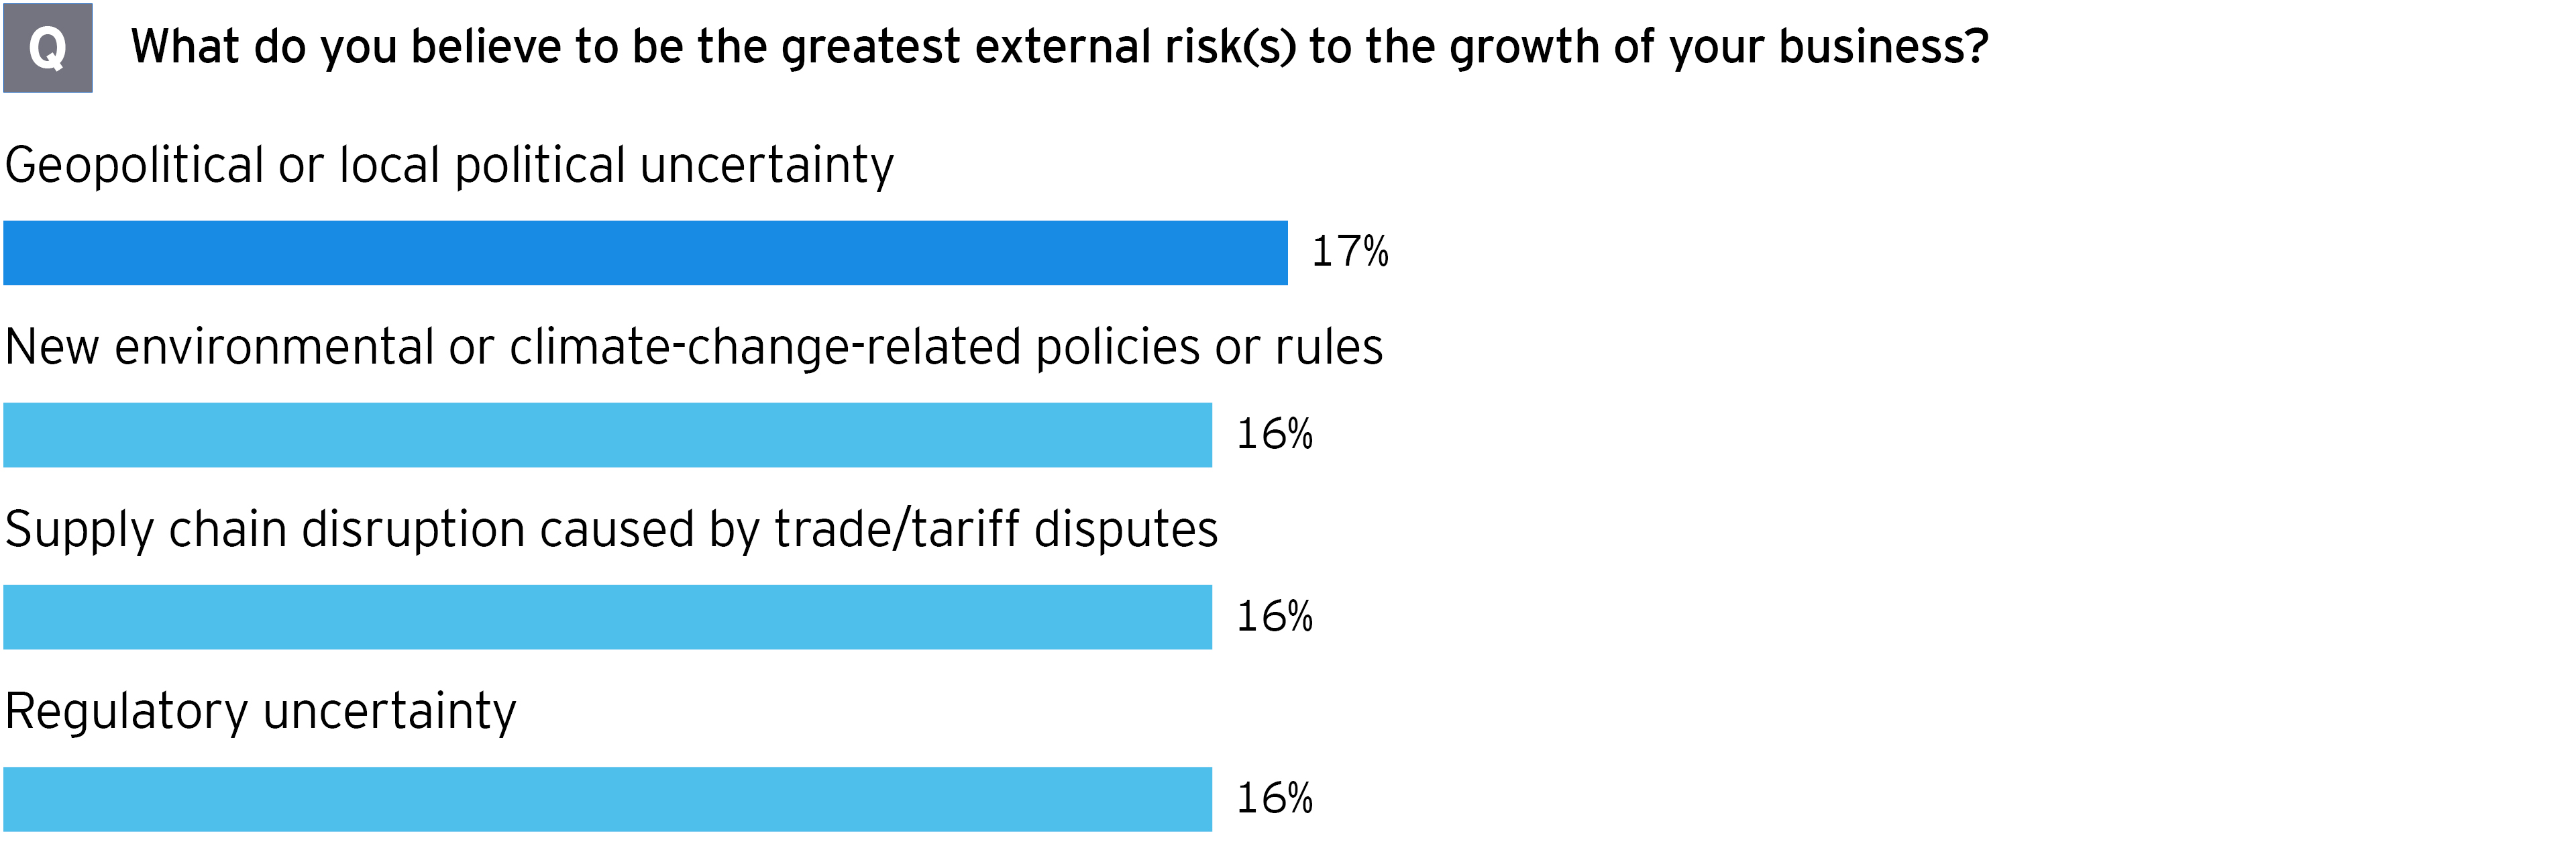 M&A survey mining and metals greatest external risks